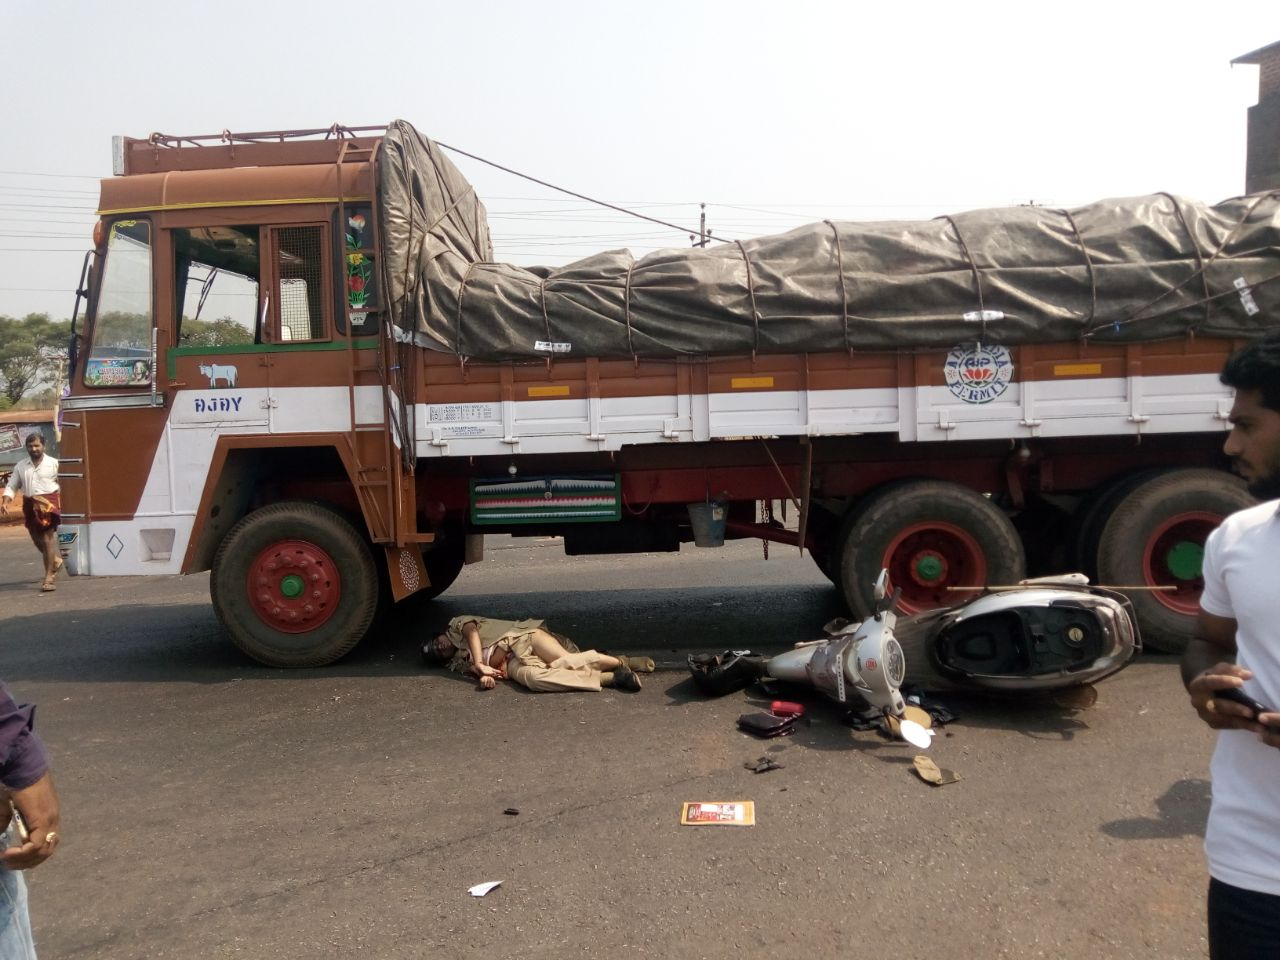 A speeding truck hit two wheeler at Murdeshwar - police constable killed on the spot